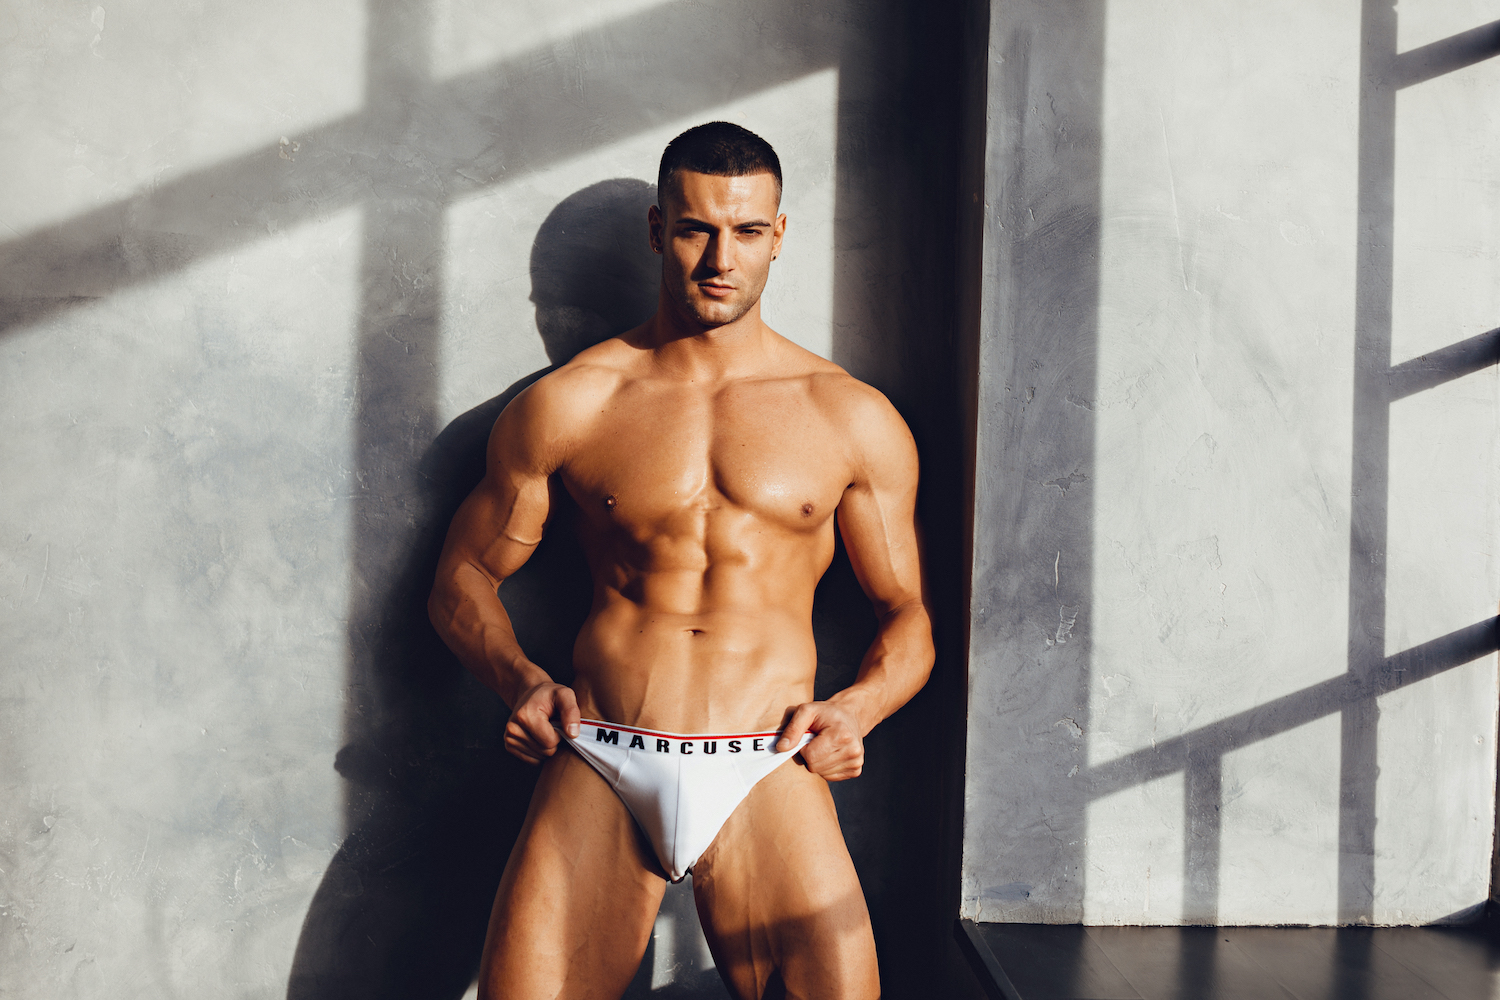 Marcuse - Active boxer charcoal